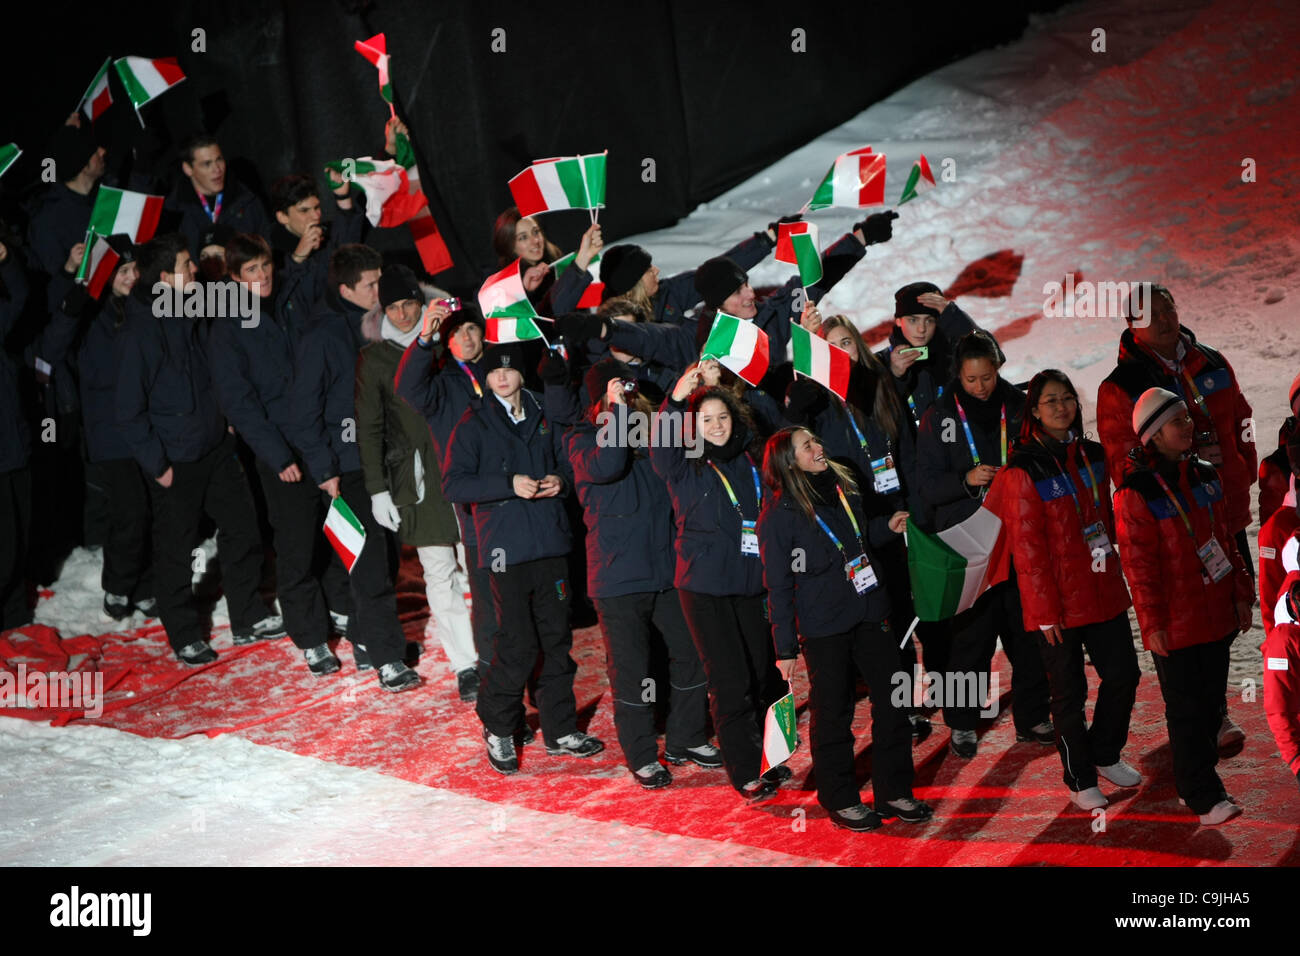 13.01.2012.  Innsbruck, Austria. Italian delegation during the Winter Youth Olympic Games Opening Ceremony - Stock Image